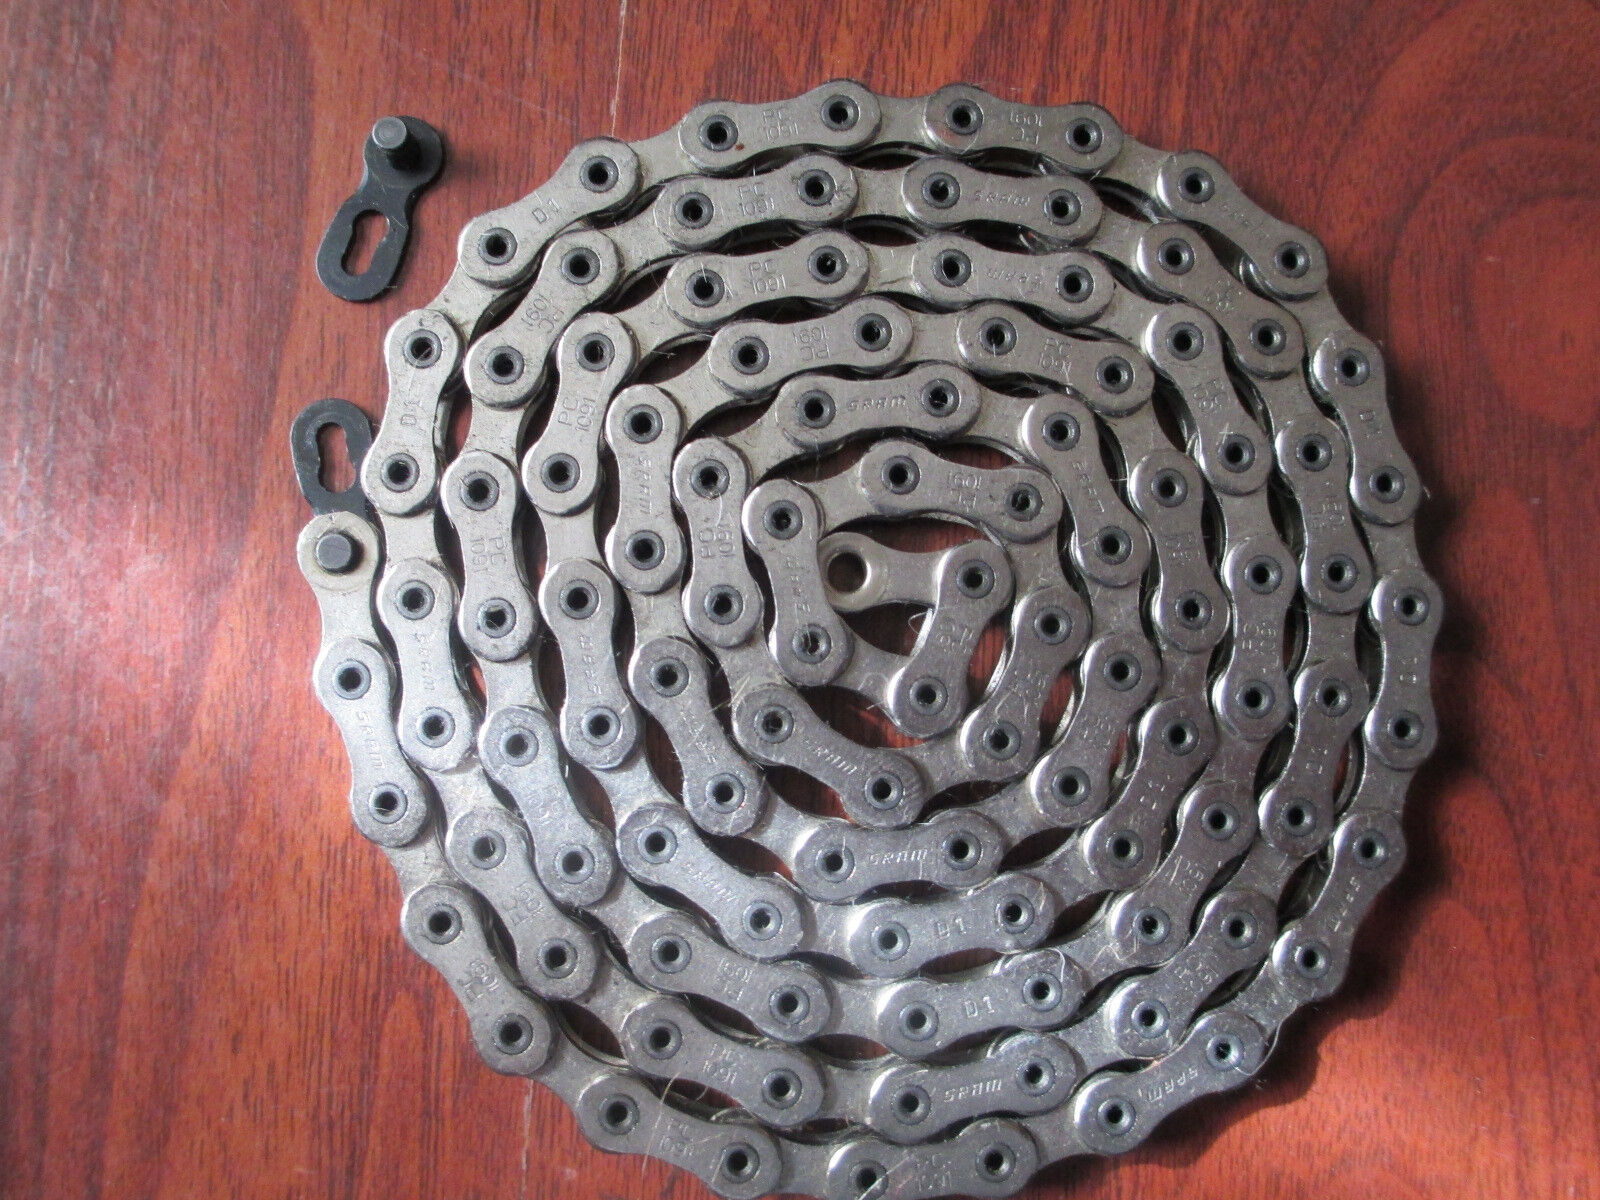 SRAM RED PC 1091 CHAIN 106 LINK WITH POWER LINK